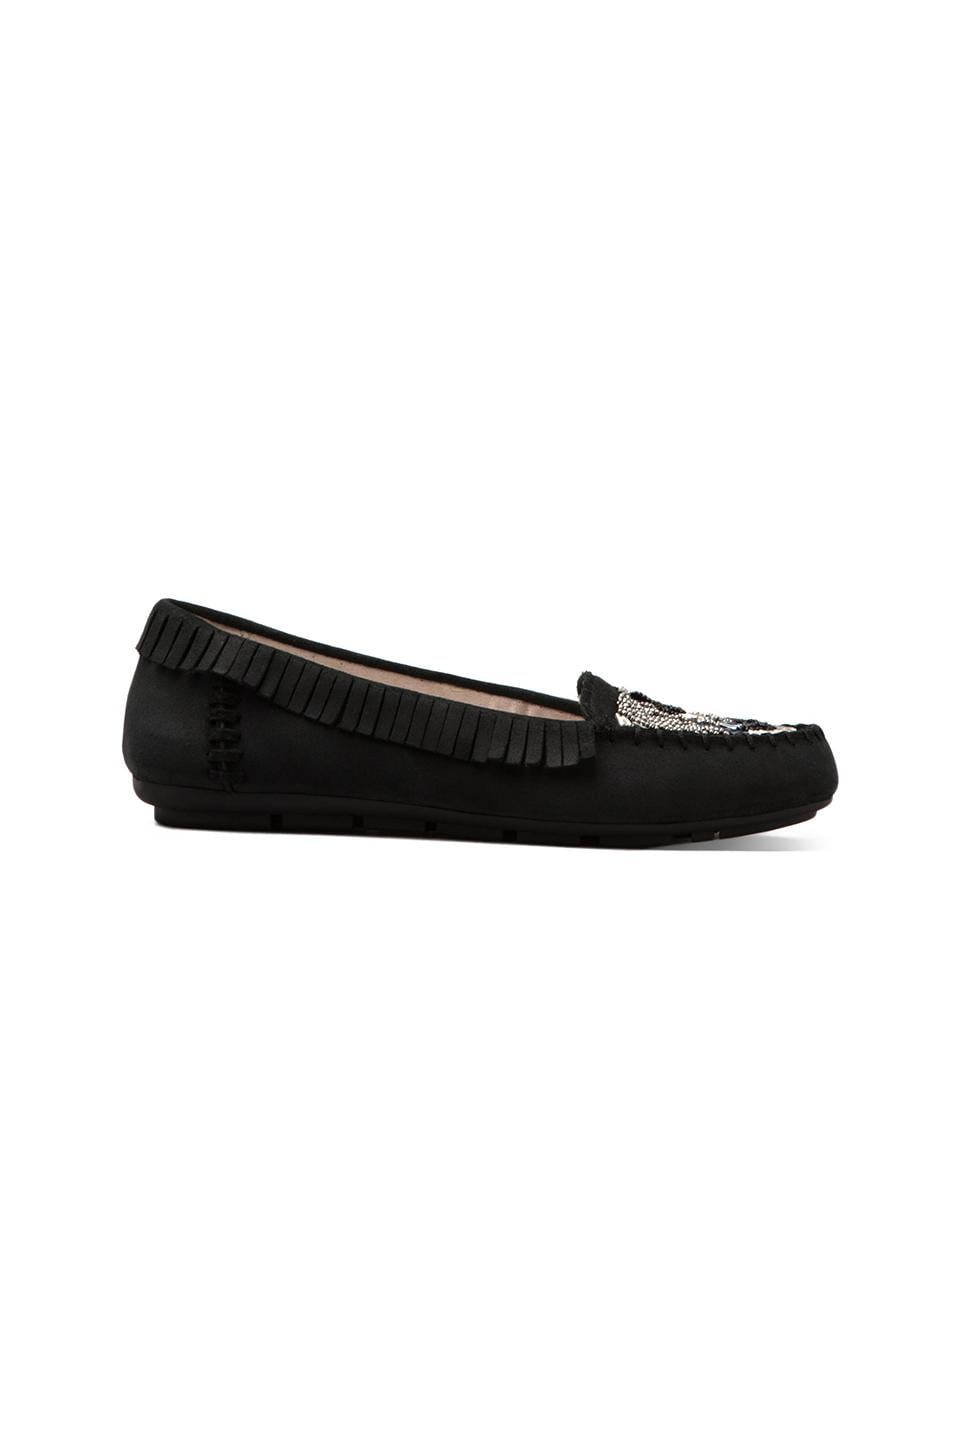 House of Harlow 1960 House of Harlow Marion Flat in Black